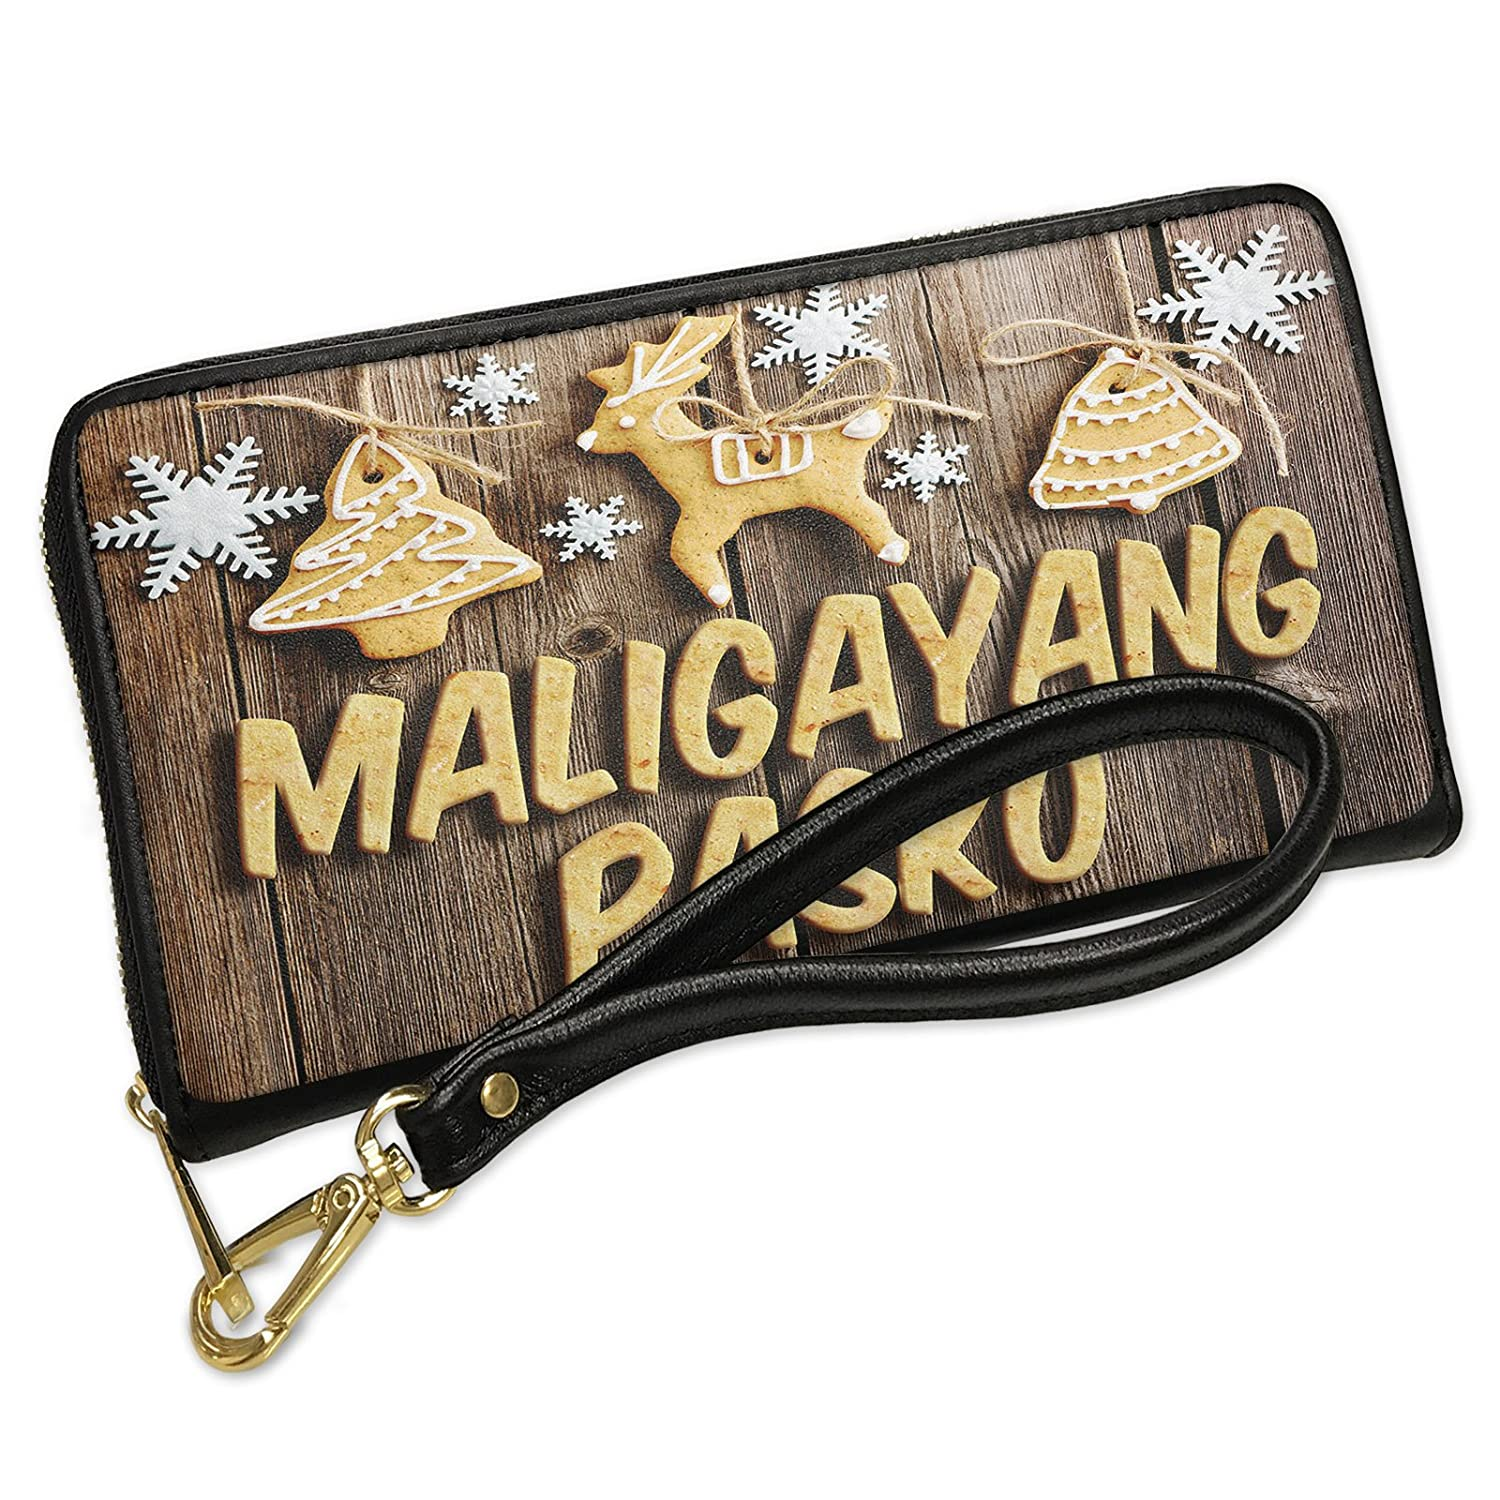 Merry Christmas In Tagalog.Wallet Clutch Merry Christmas In Tagalog From Philippines